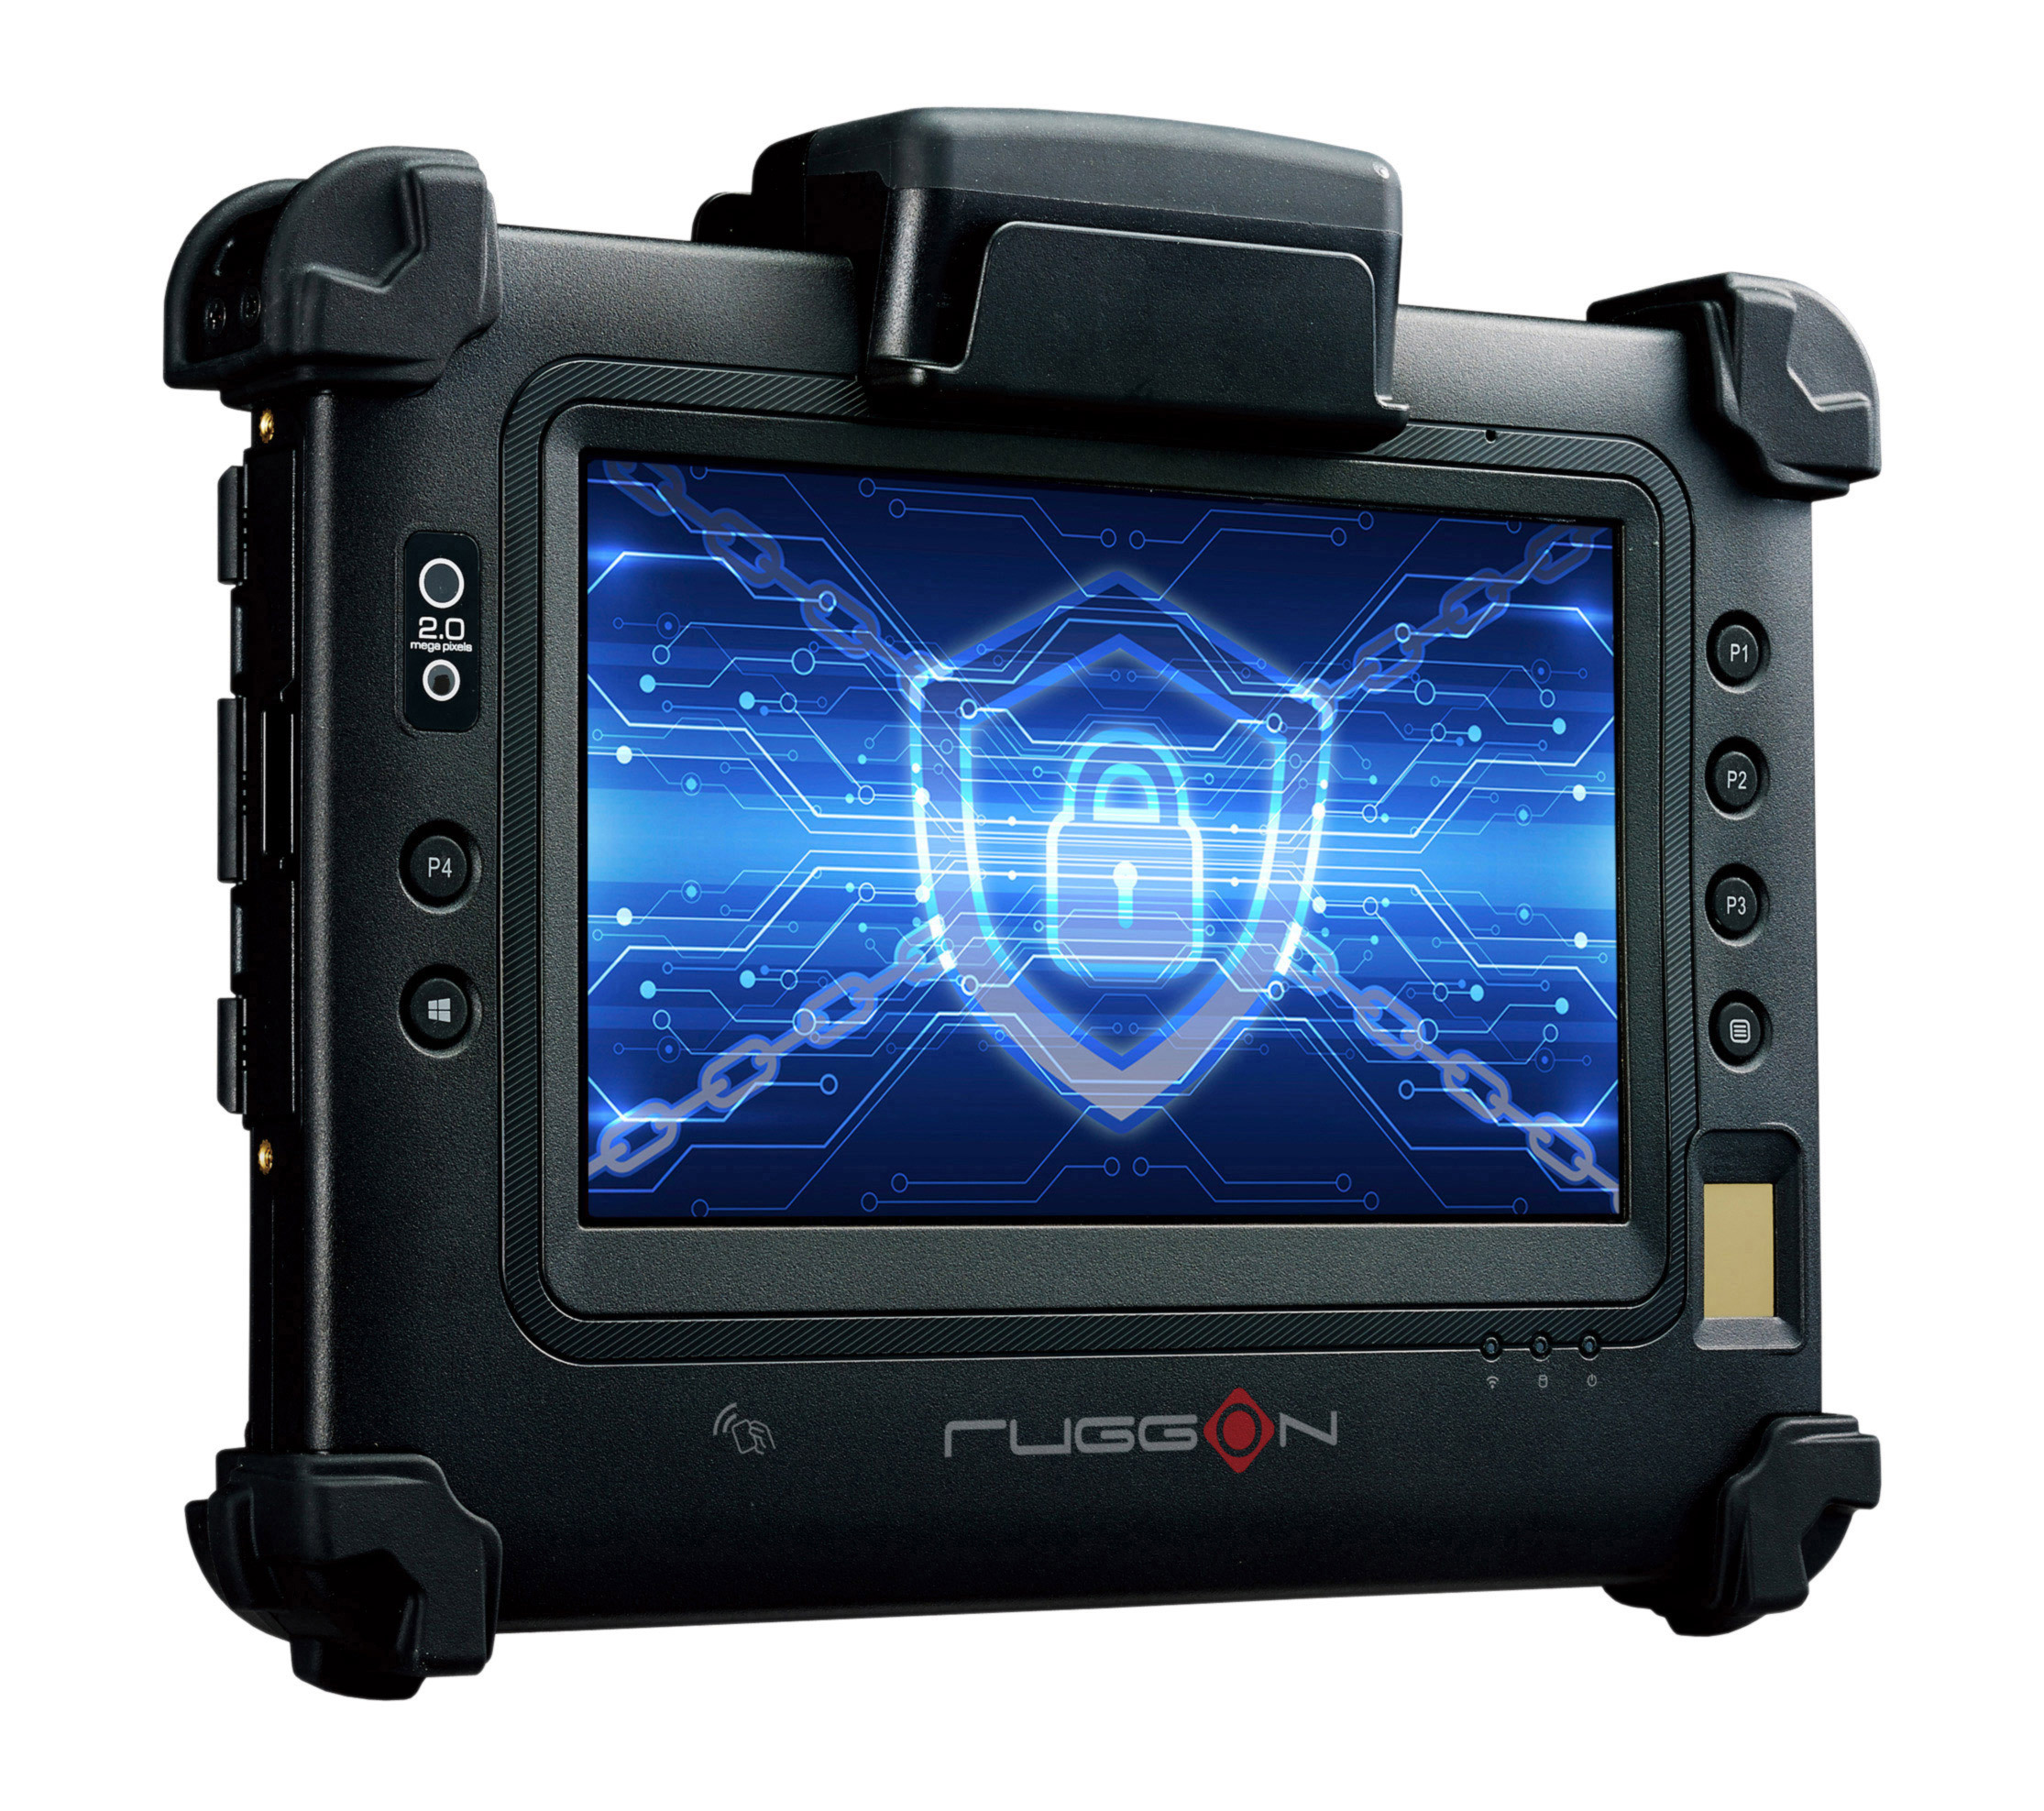 Rugged Tablet PM-311B